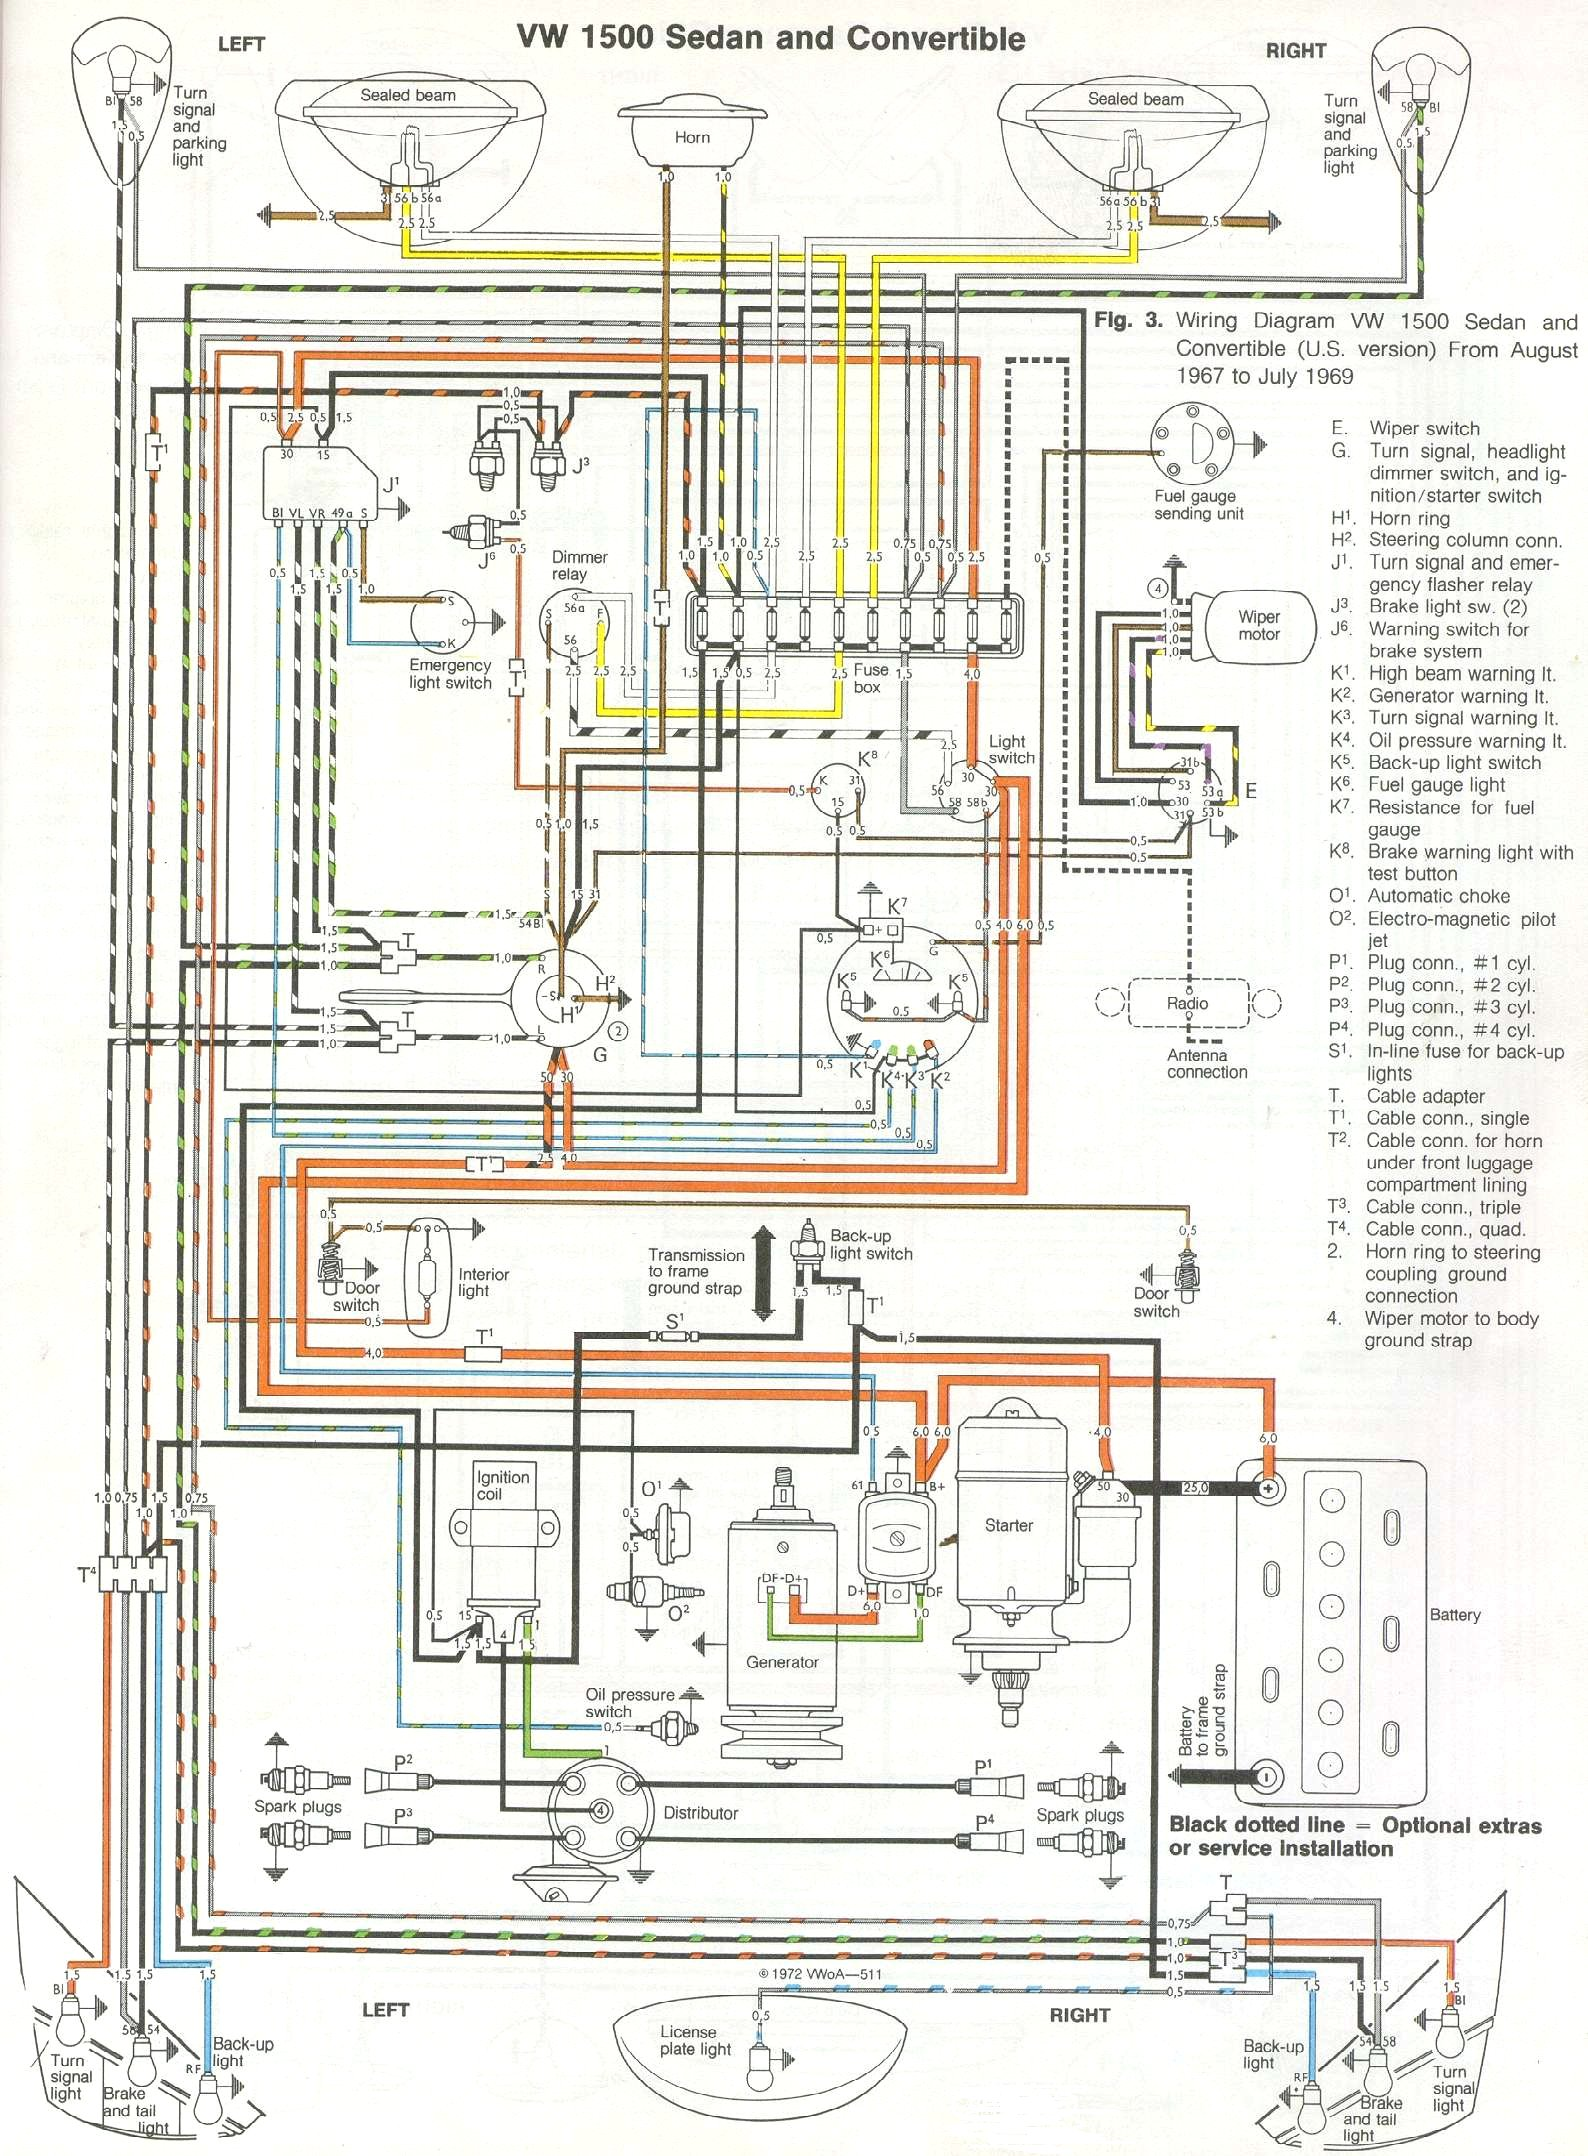 1975 Super Beetle Wiring Diagram Schematics Diagrams 2002 Daewoo Nubira 1969 71 Thegoldenbug Com Rh Vw